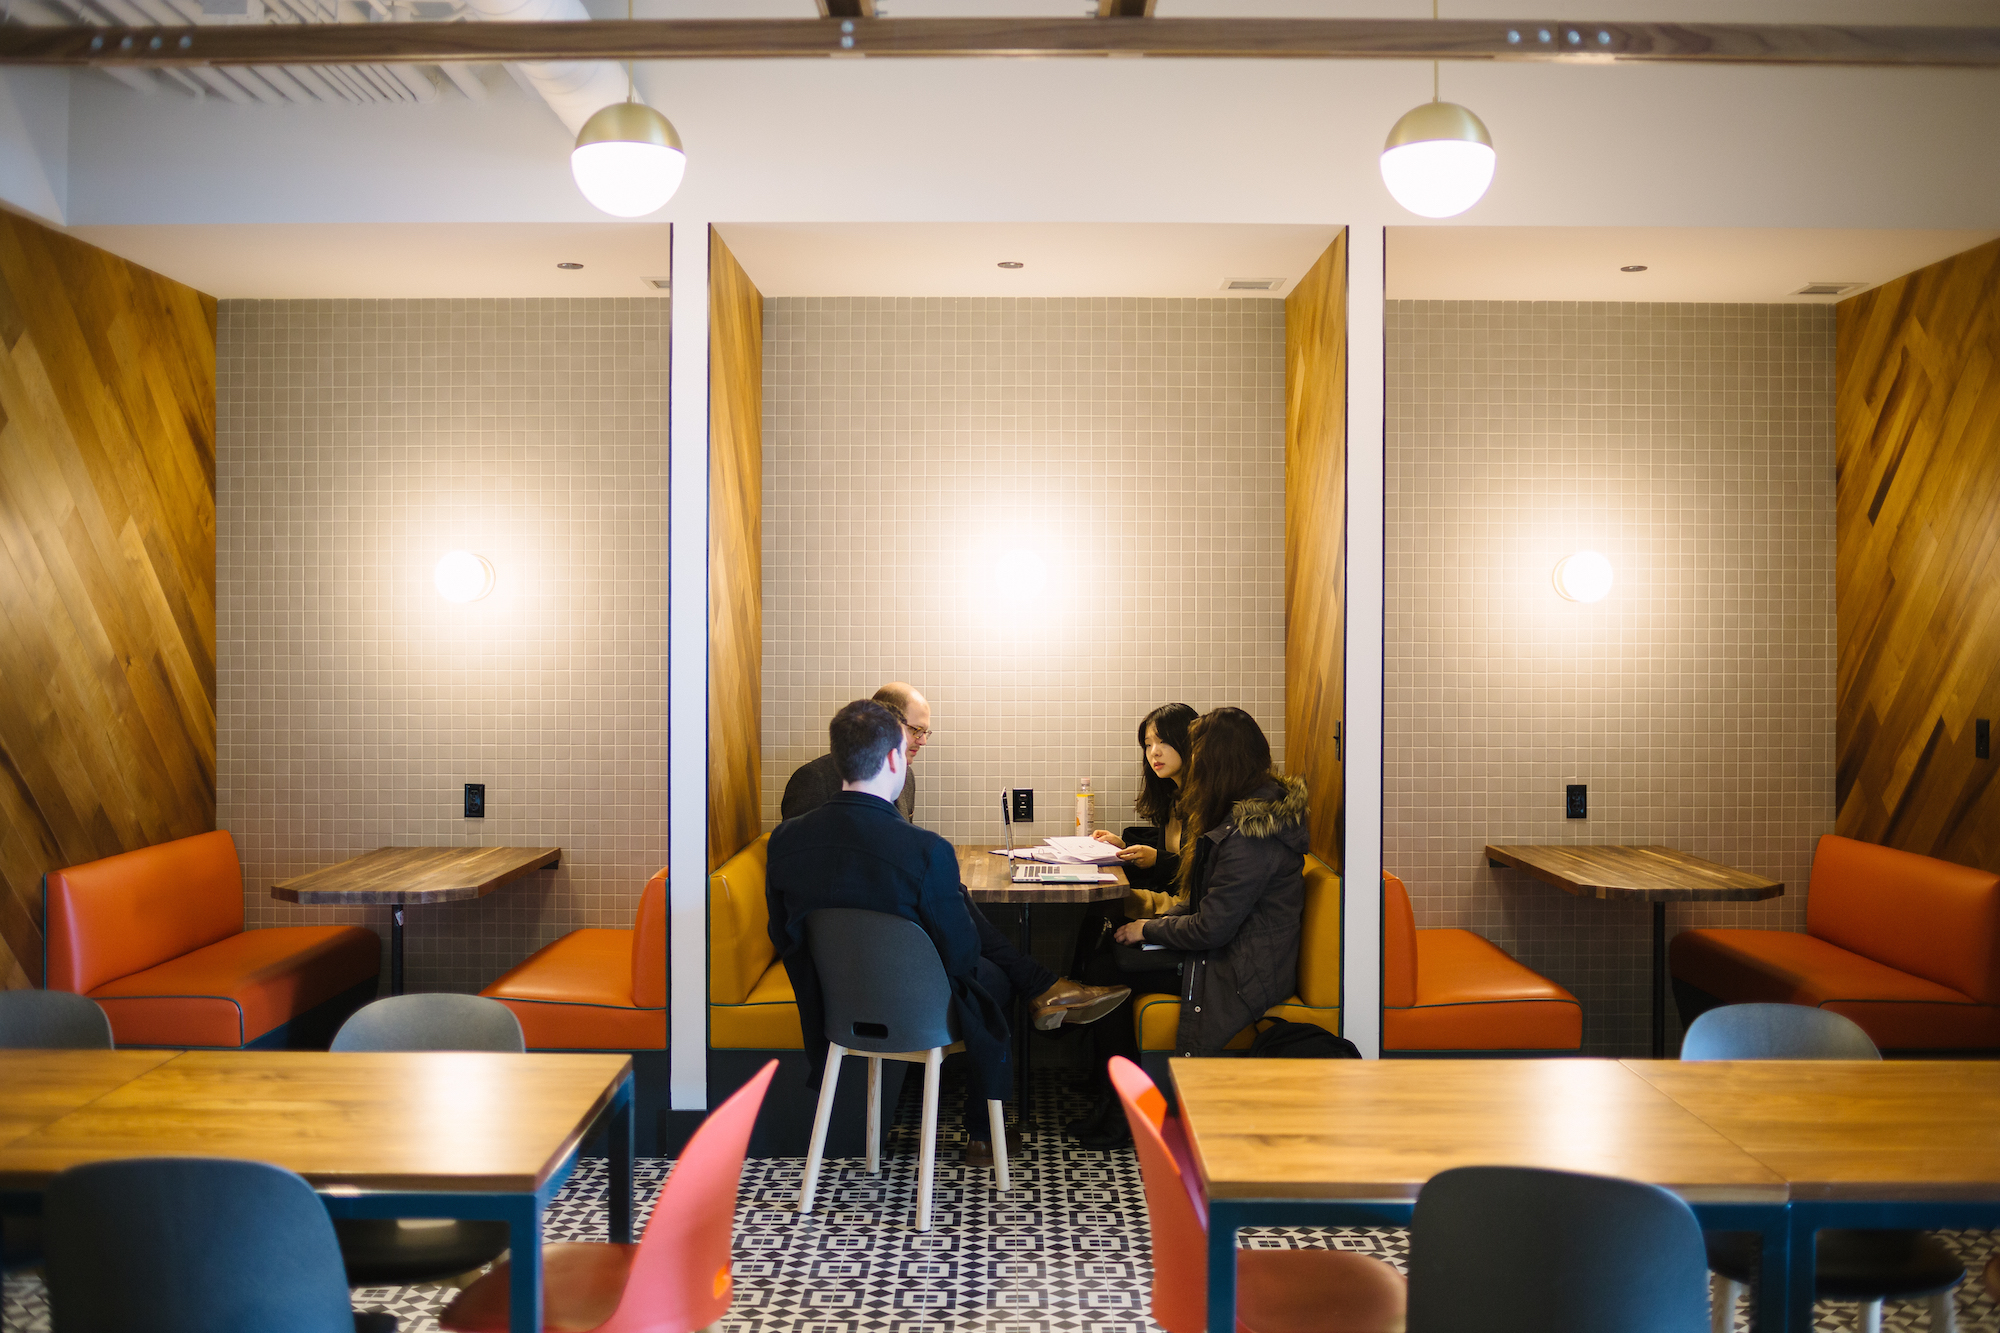 Meeting booths at WeWork's Yanping Lu location in central Shanghai. Photo credit: WeWork.